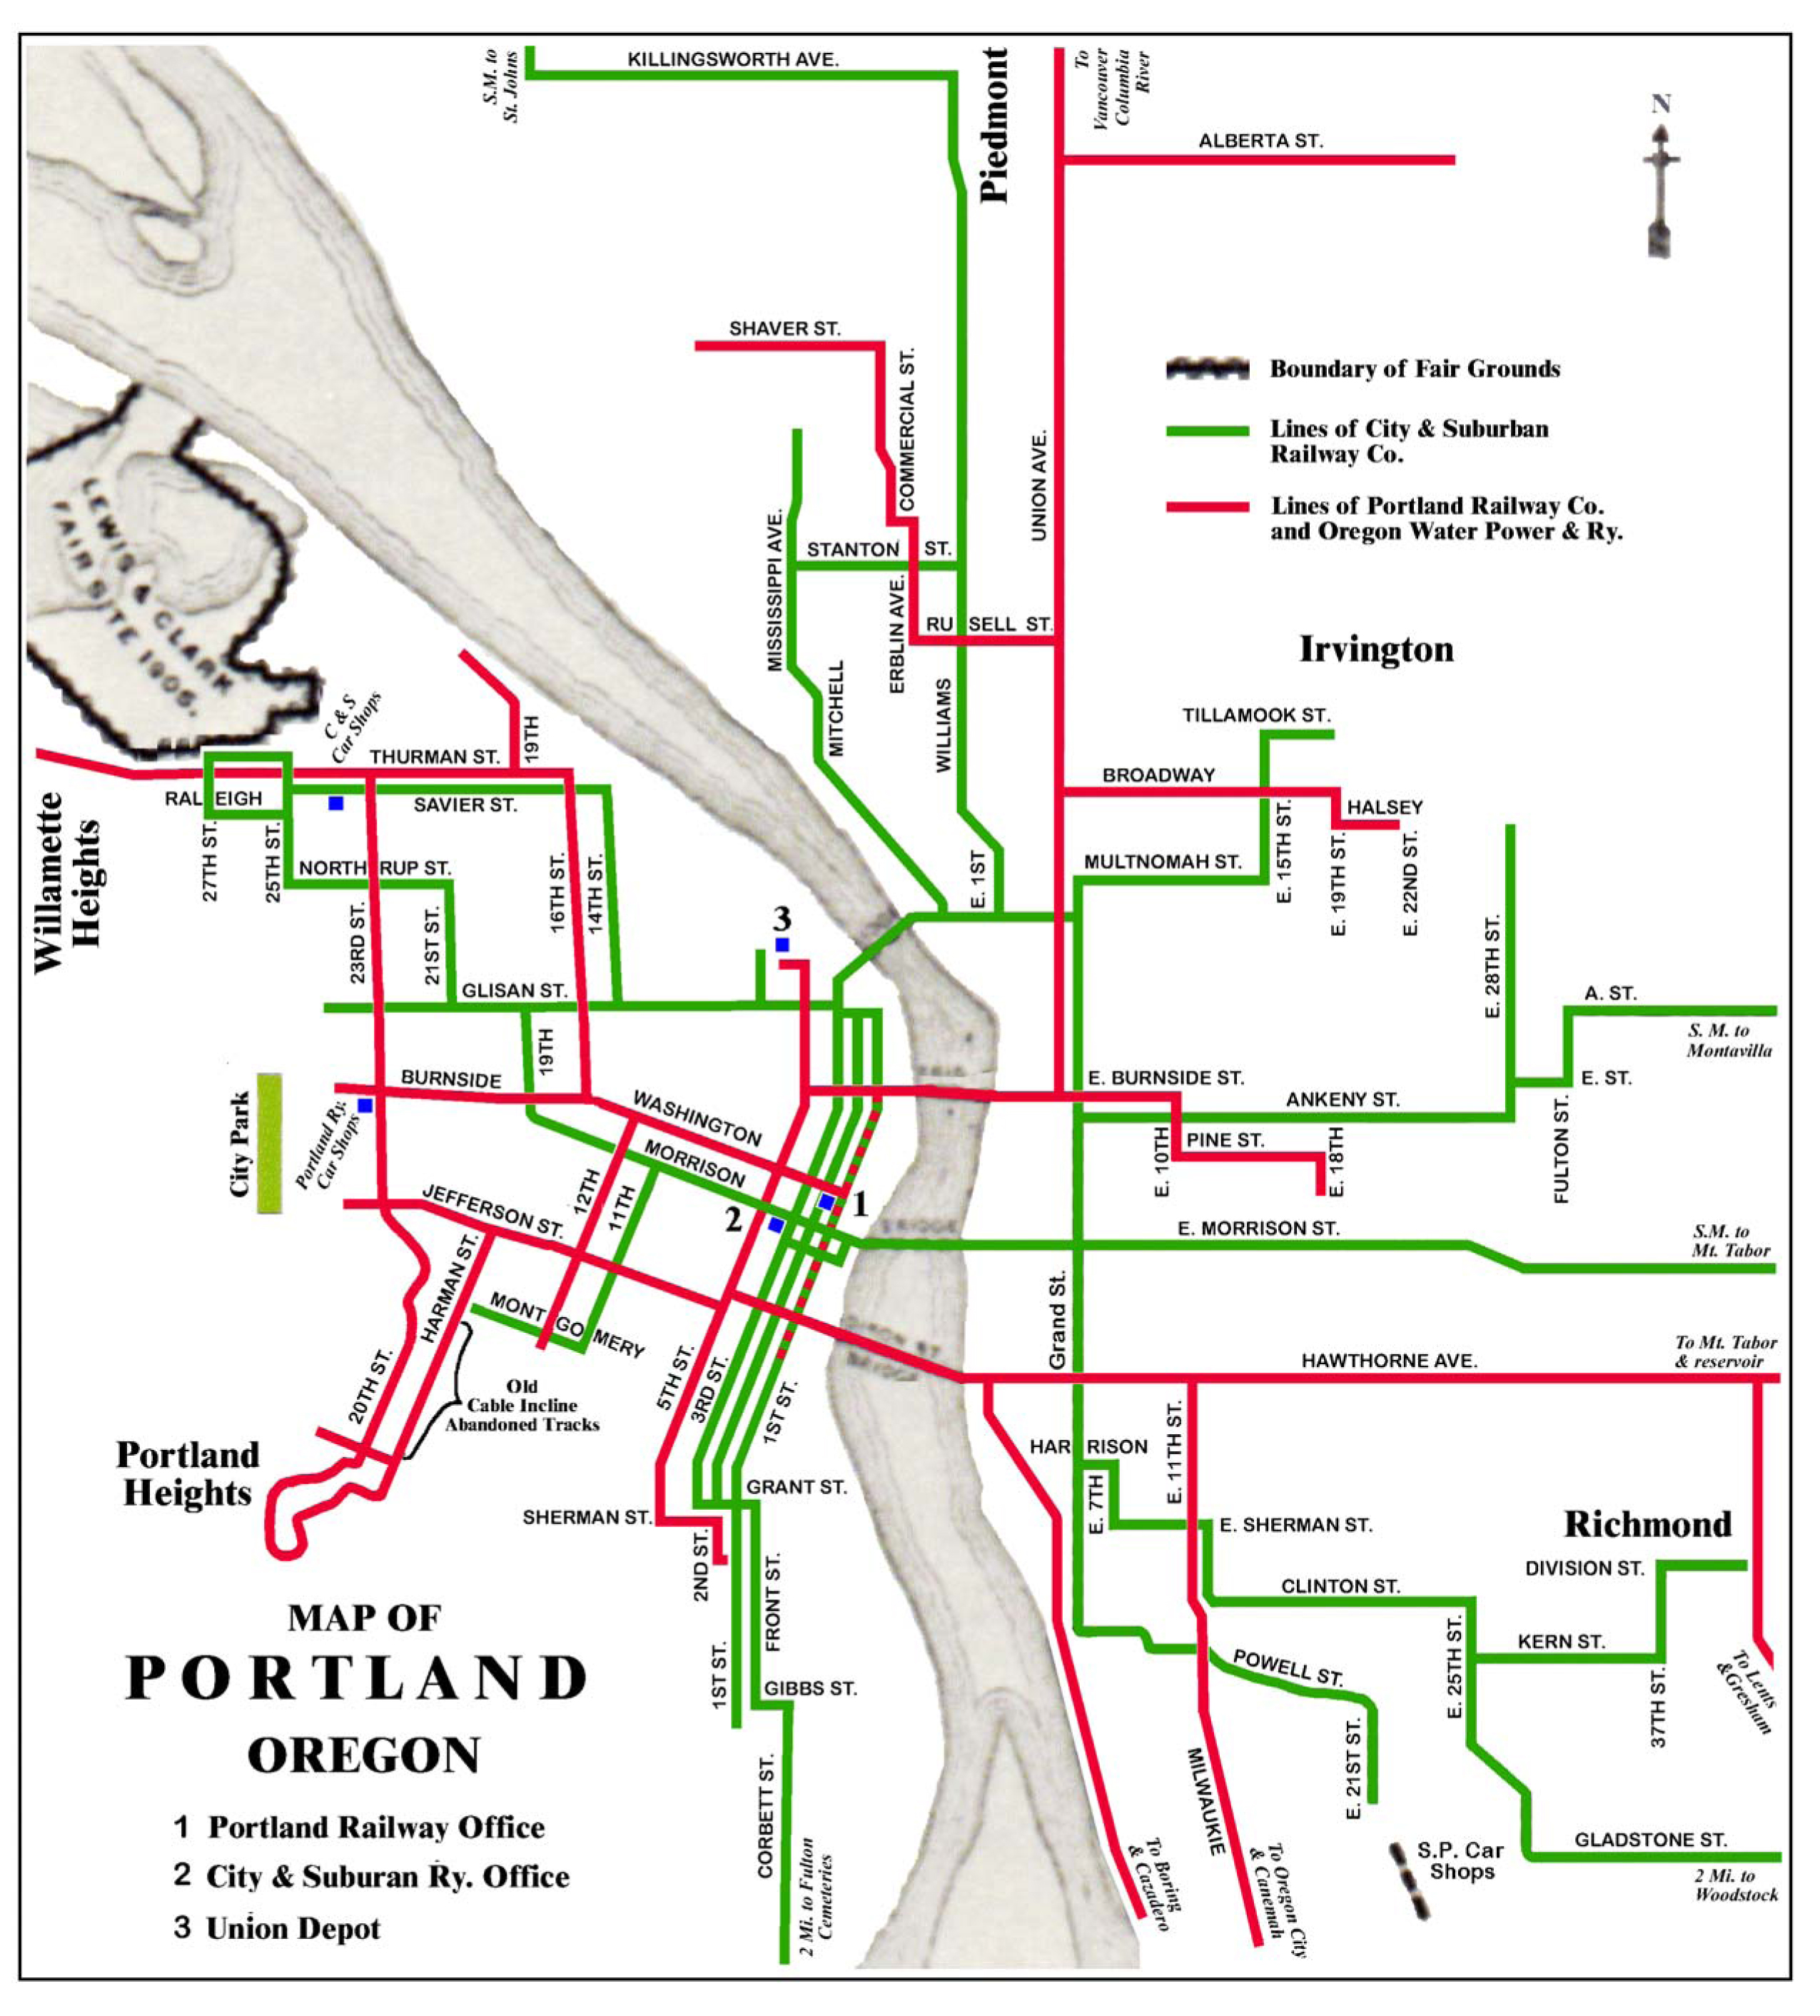 Trams San Francisco Map.Portland Streetcar System